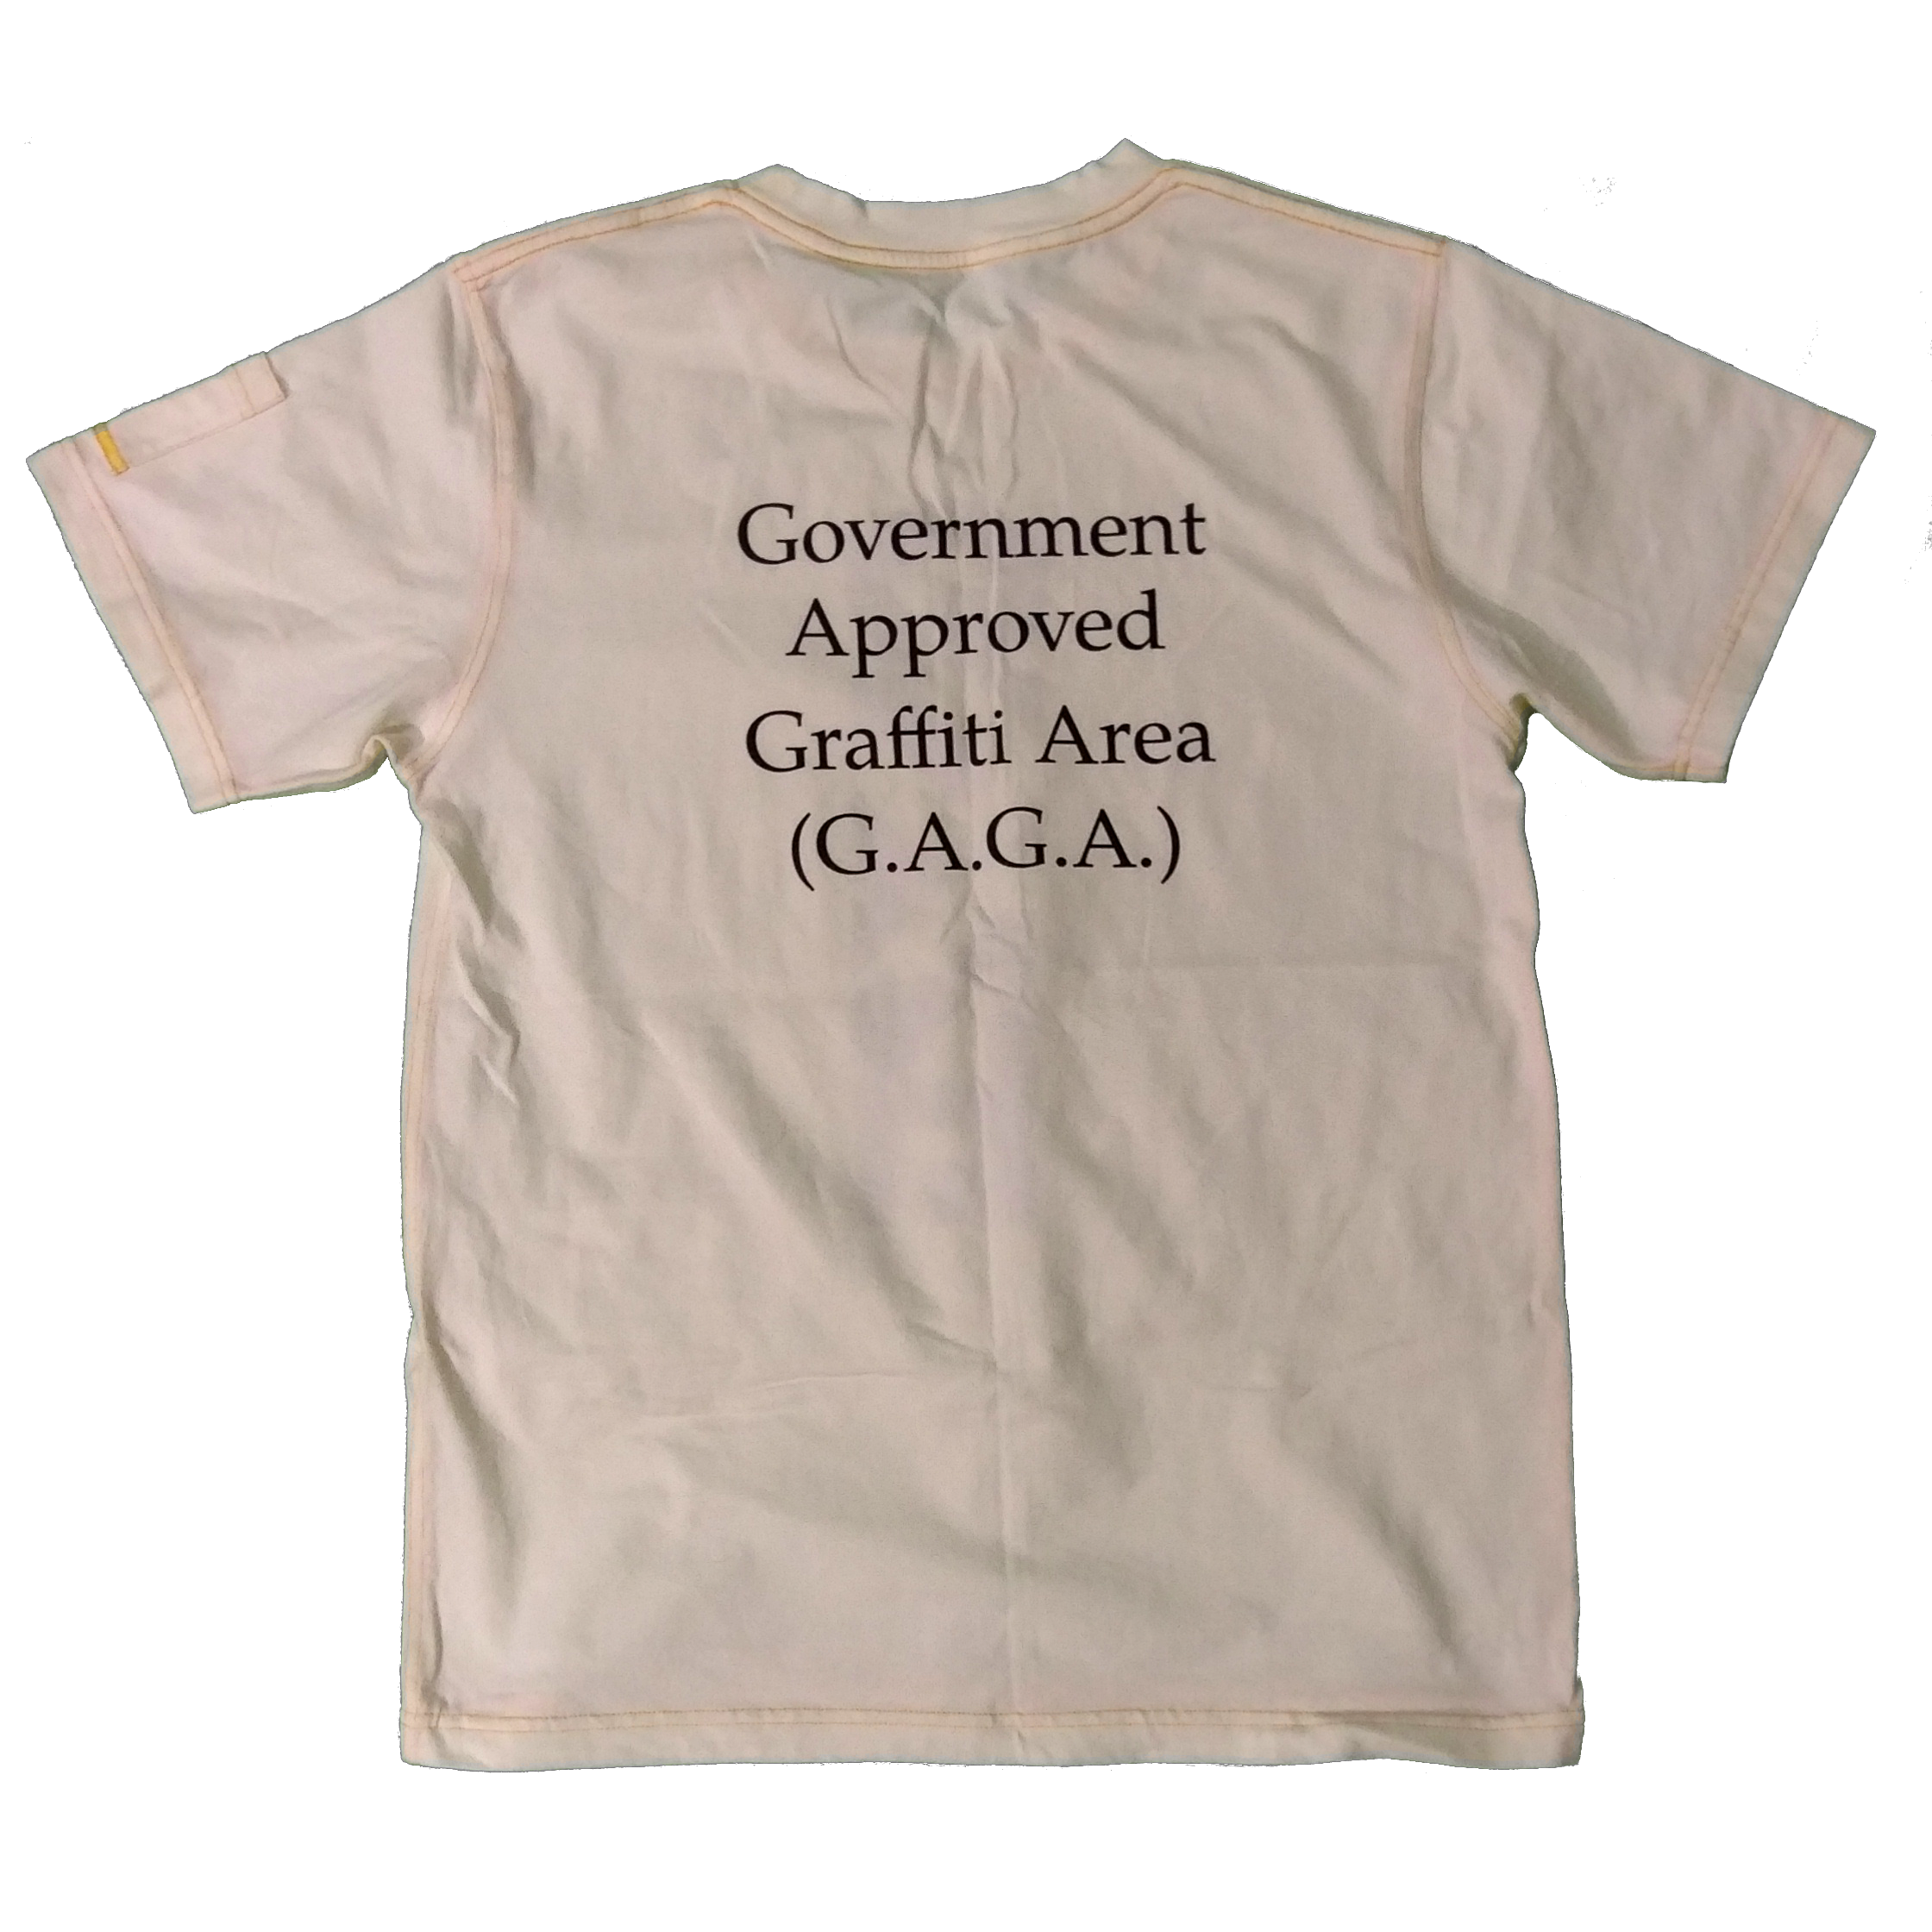 Government Approved Graffiti Area (G.A.G.A.) – Limited Edition